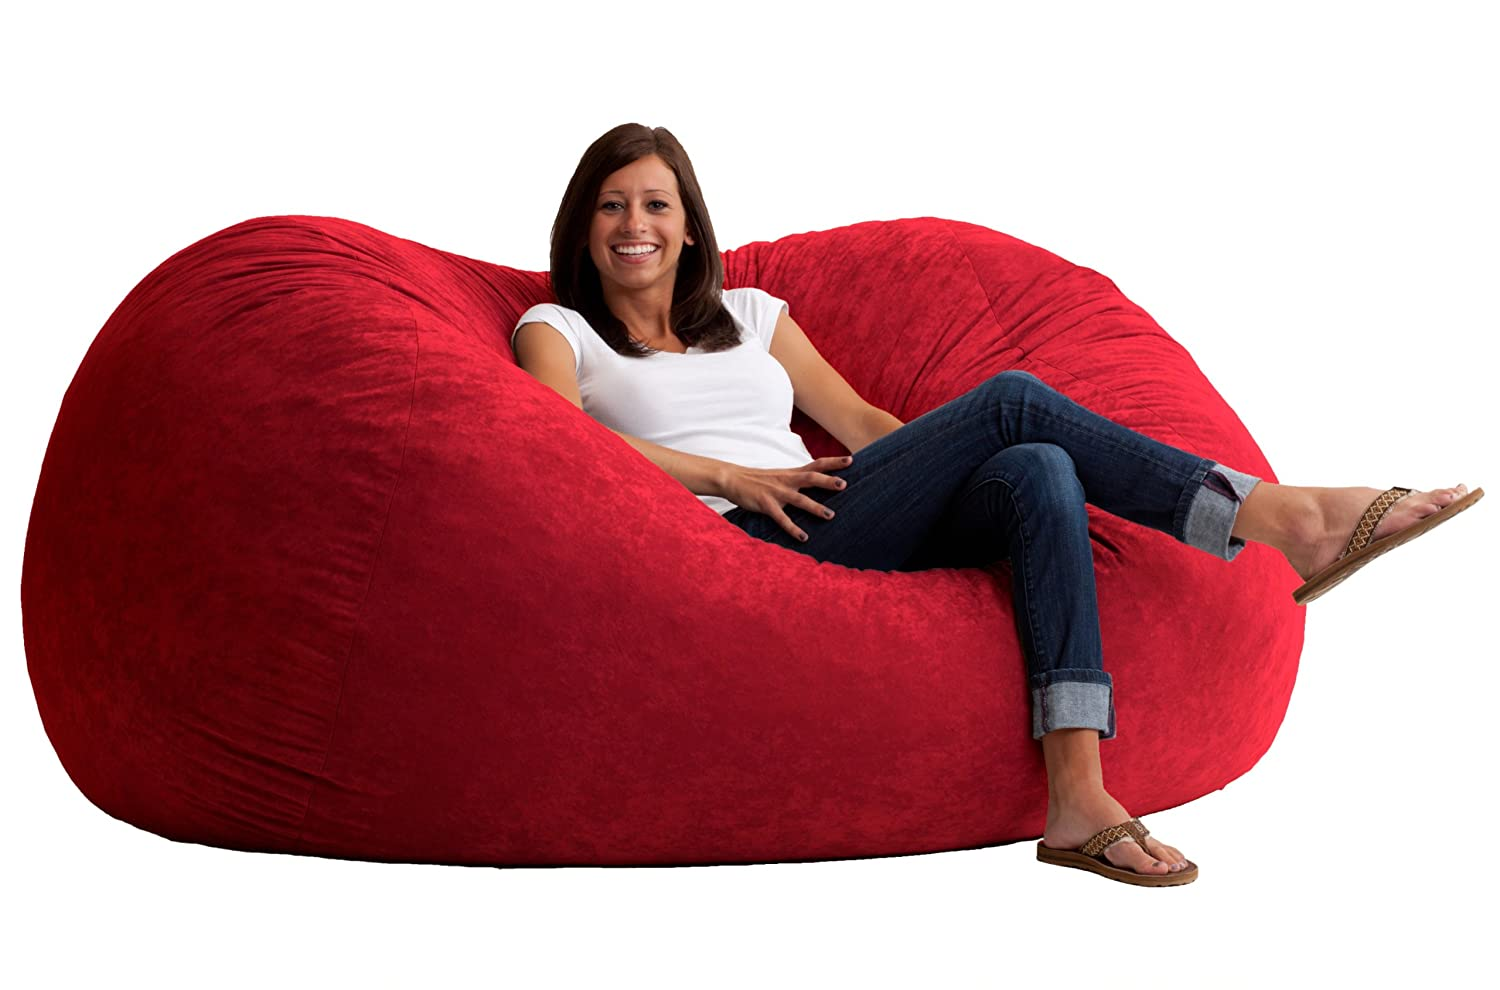 Large Floor Pillows are Perfect For Dorm Rooms